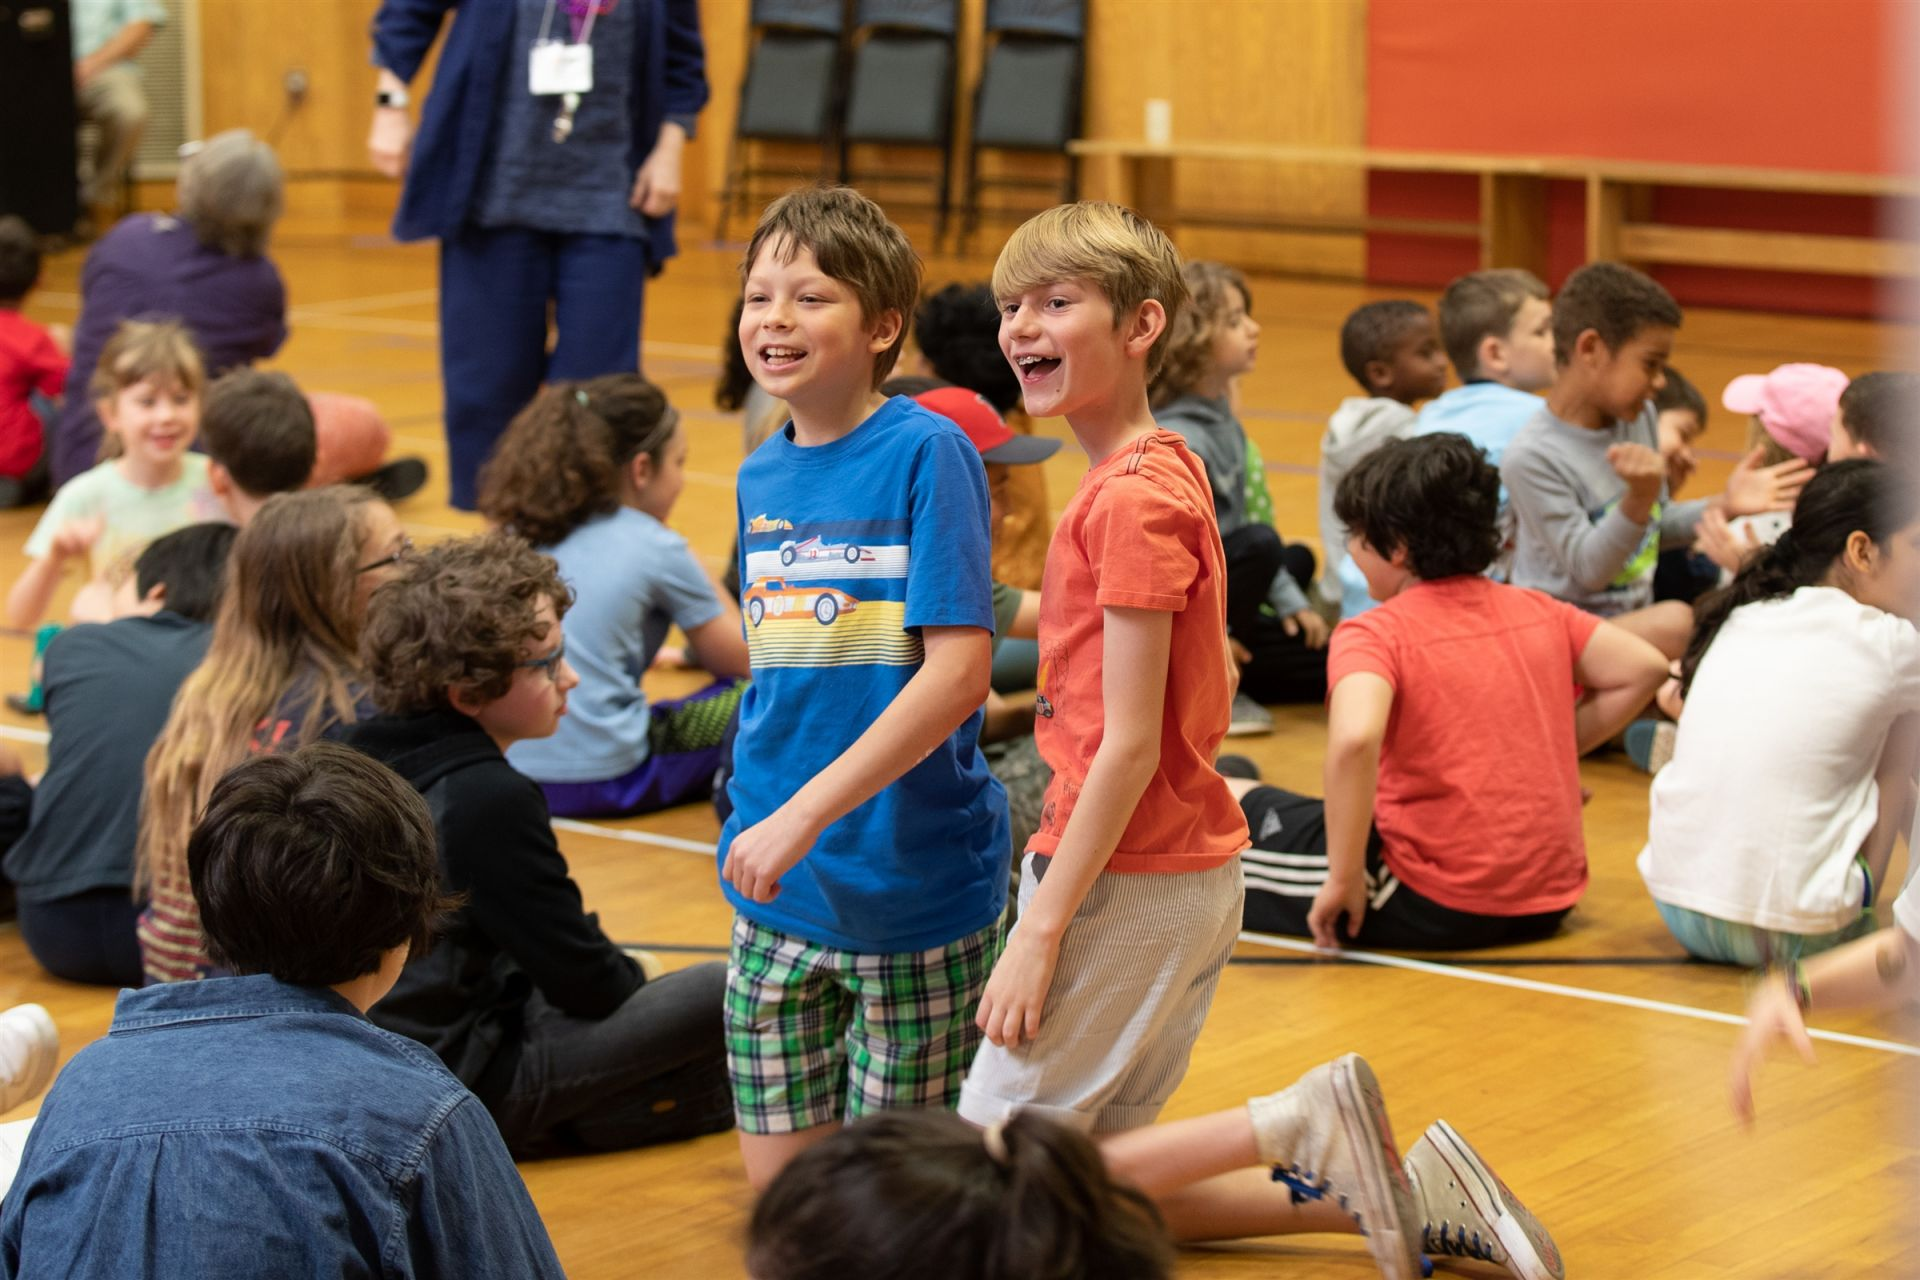 Students smile at their elders in the crowd before the Significant Elders Day assembly.